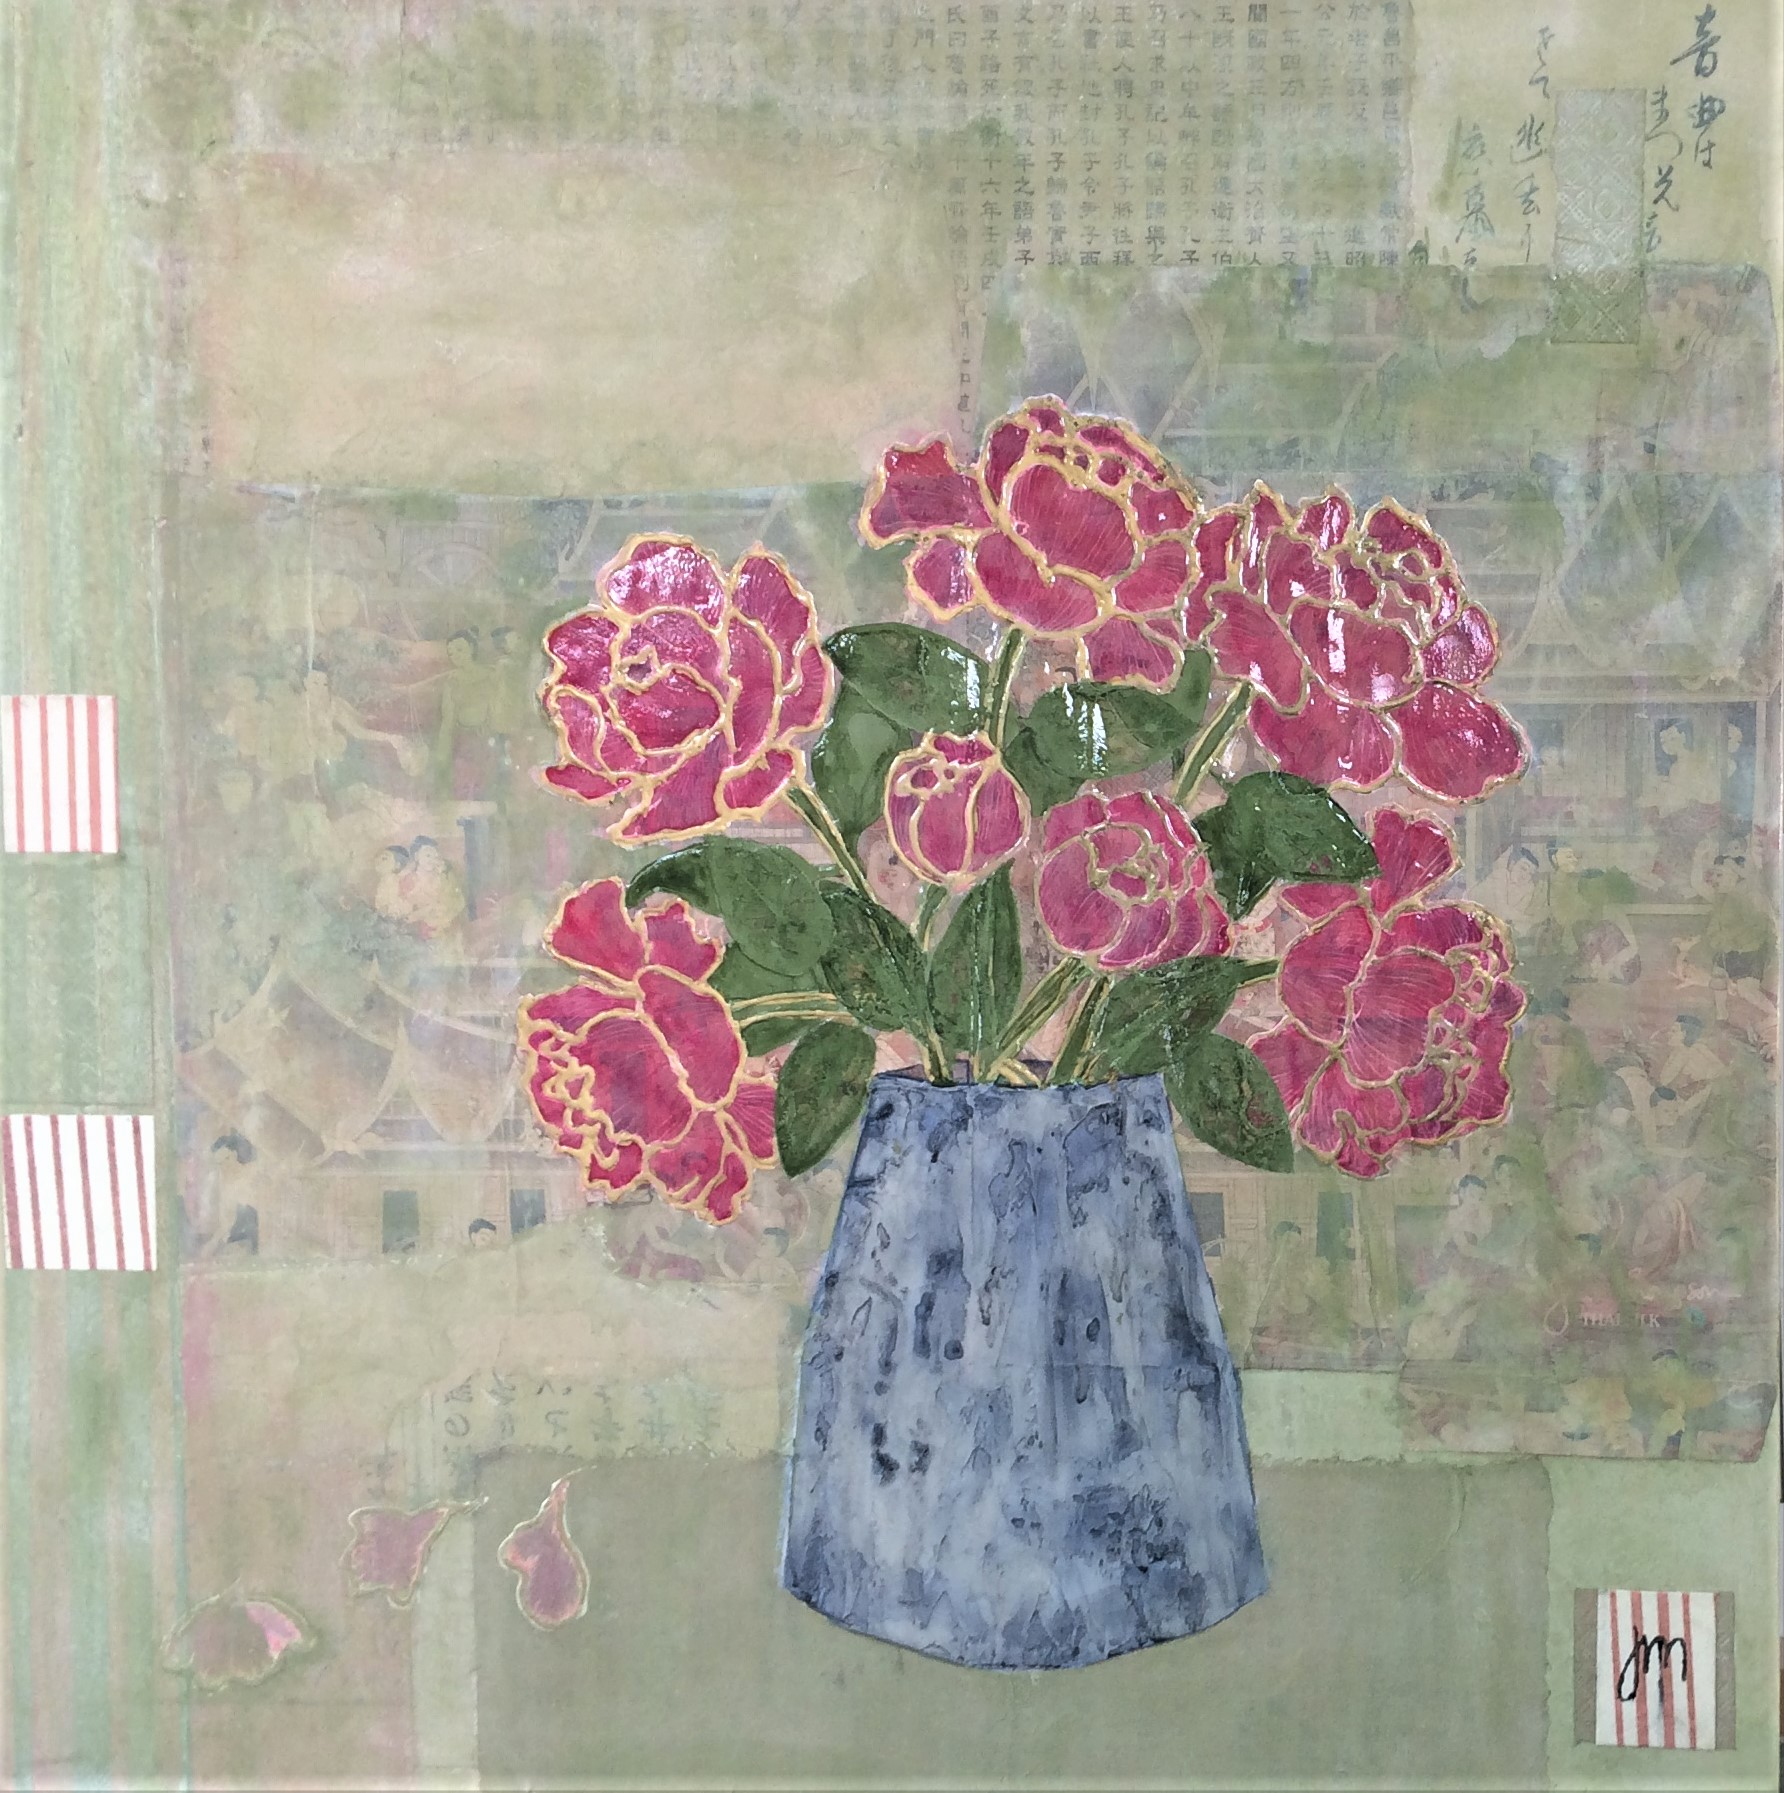 Peonies Mixed Media on board Framed in a wide white frame. 800mm x 800mm